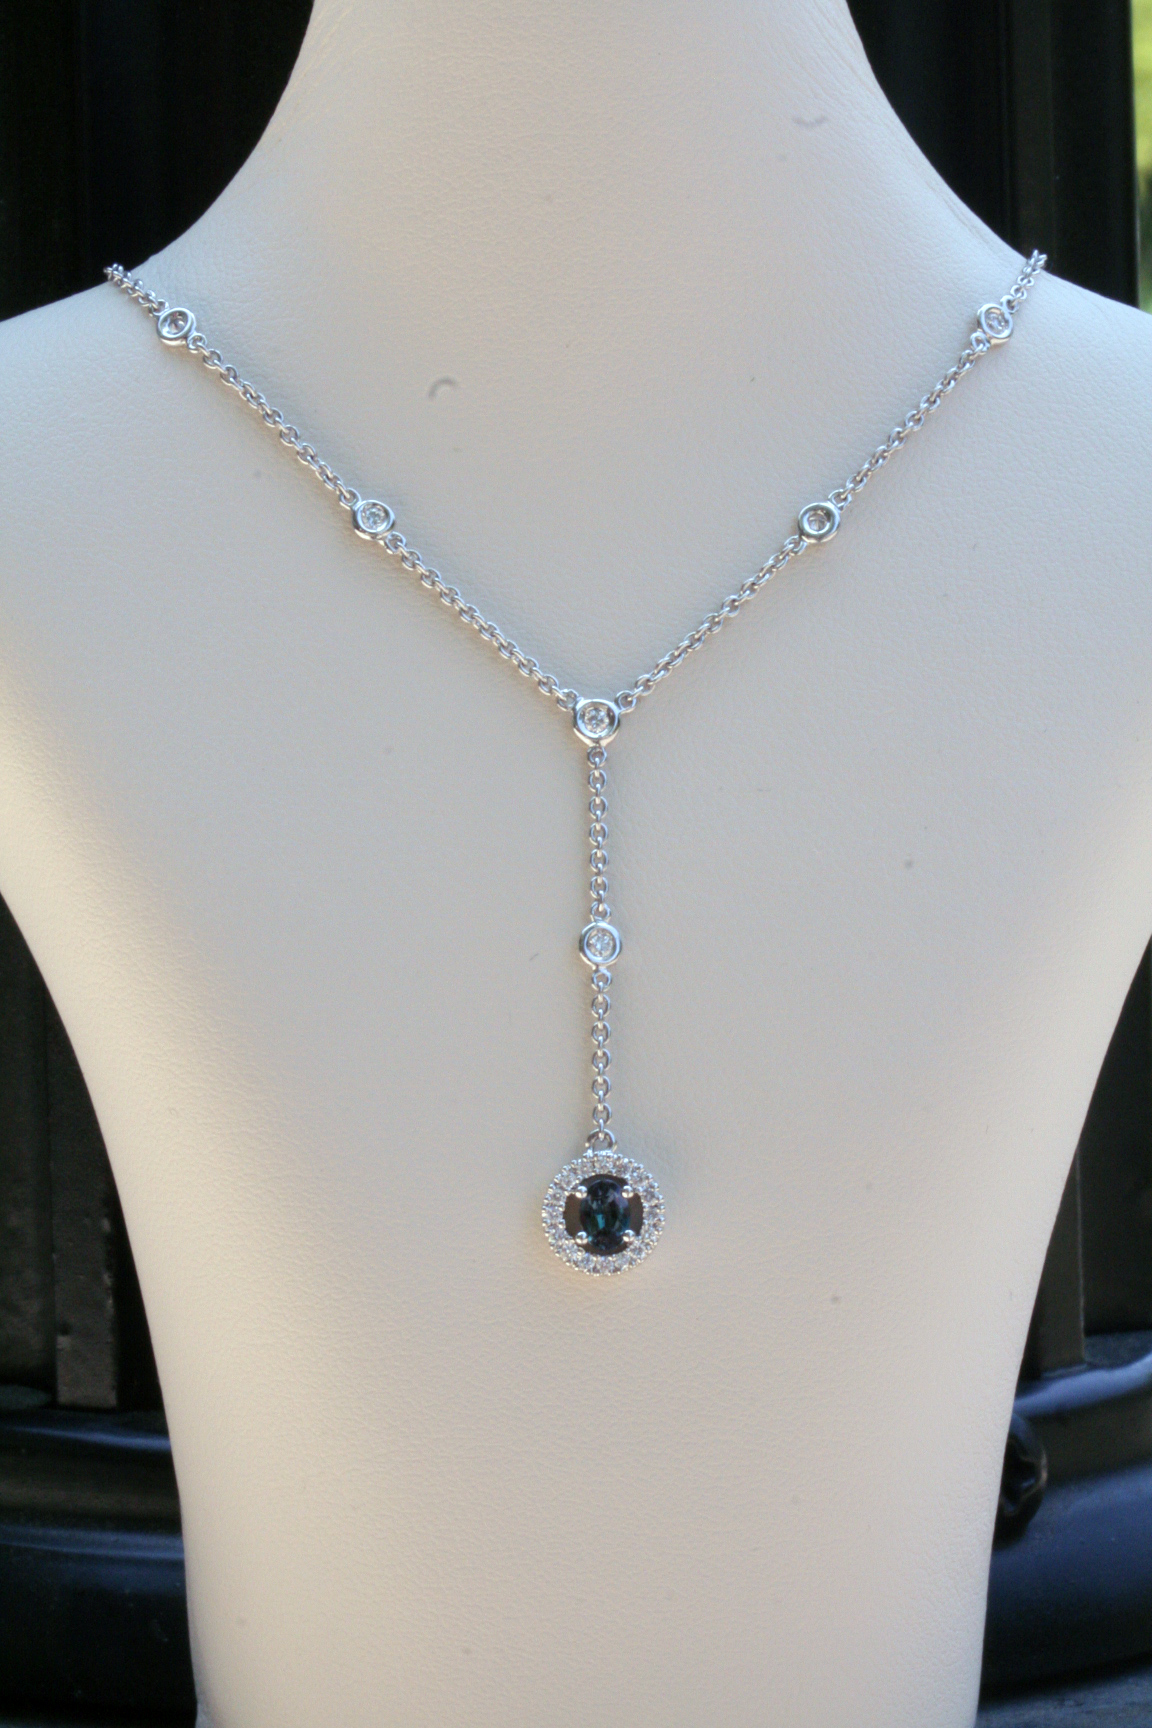 pure alexandrite necklace from decisions coppercraft birthstone june